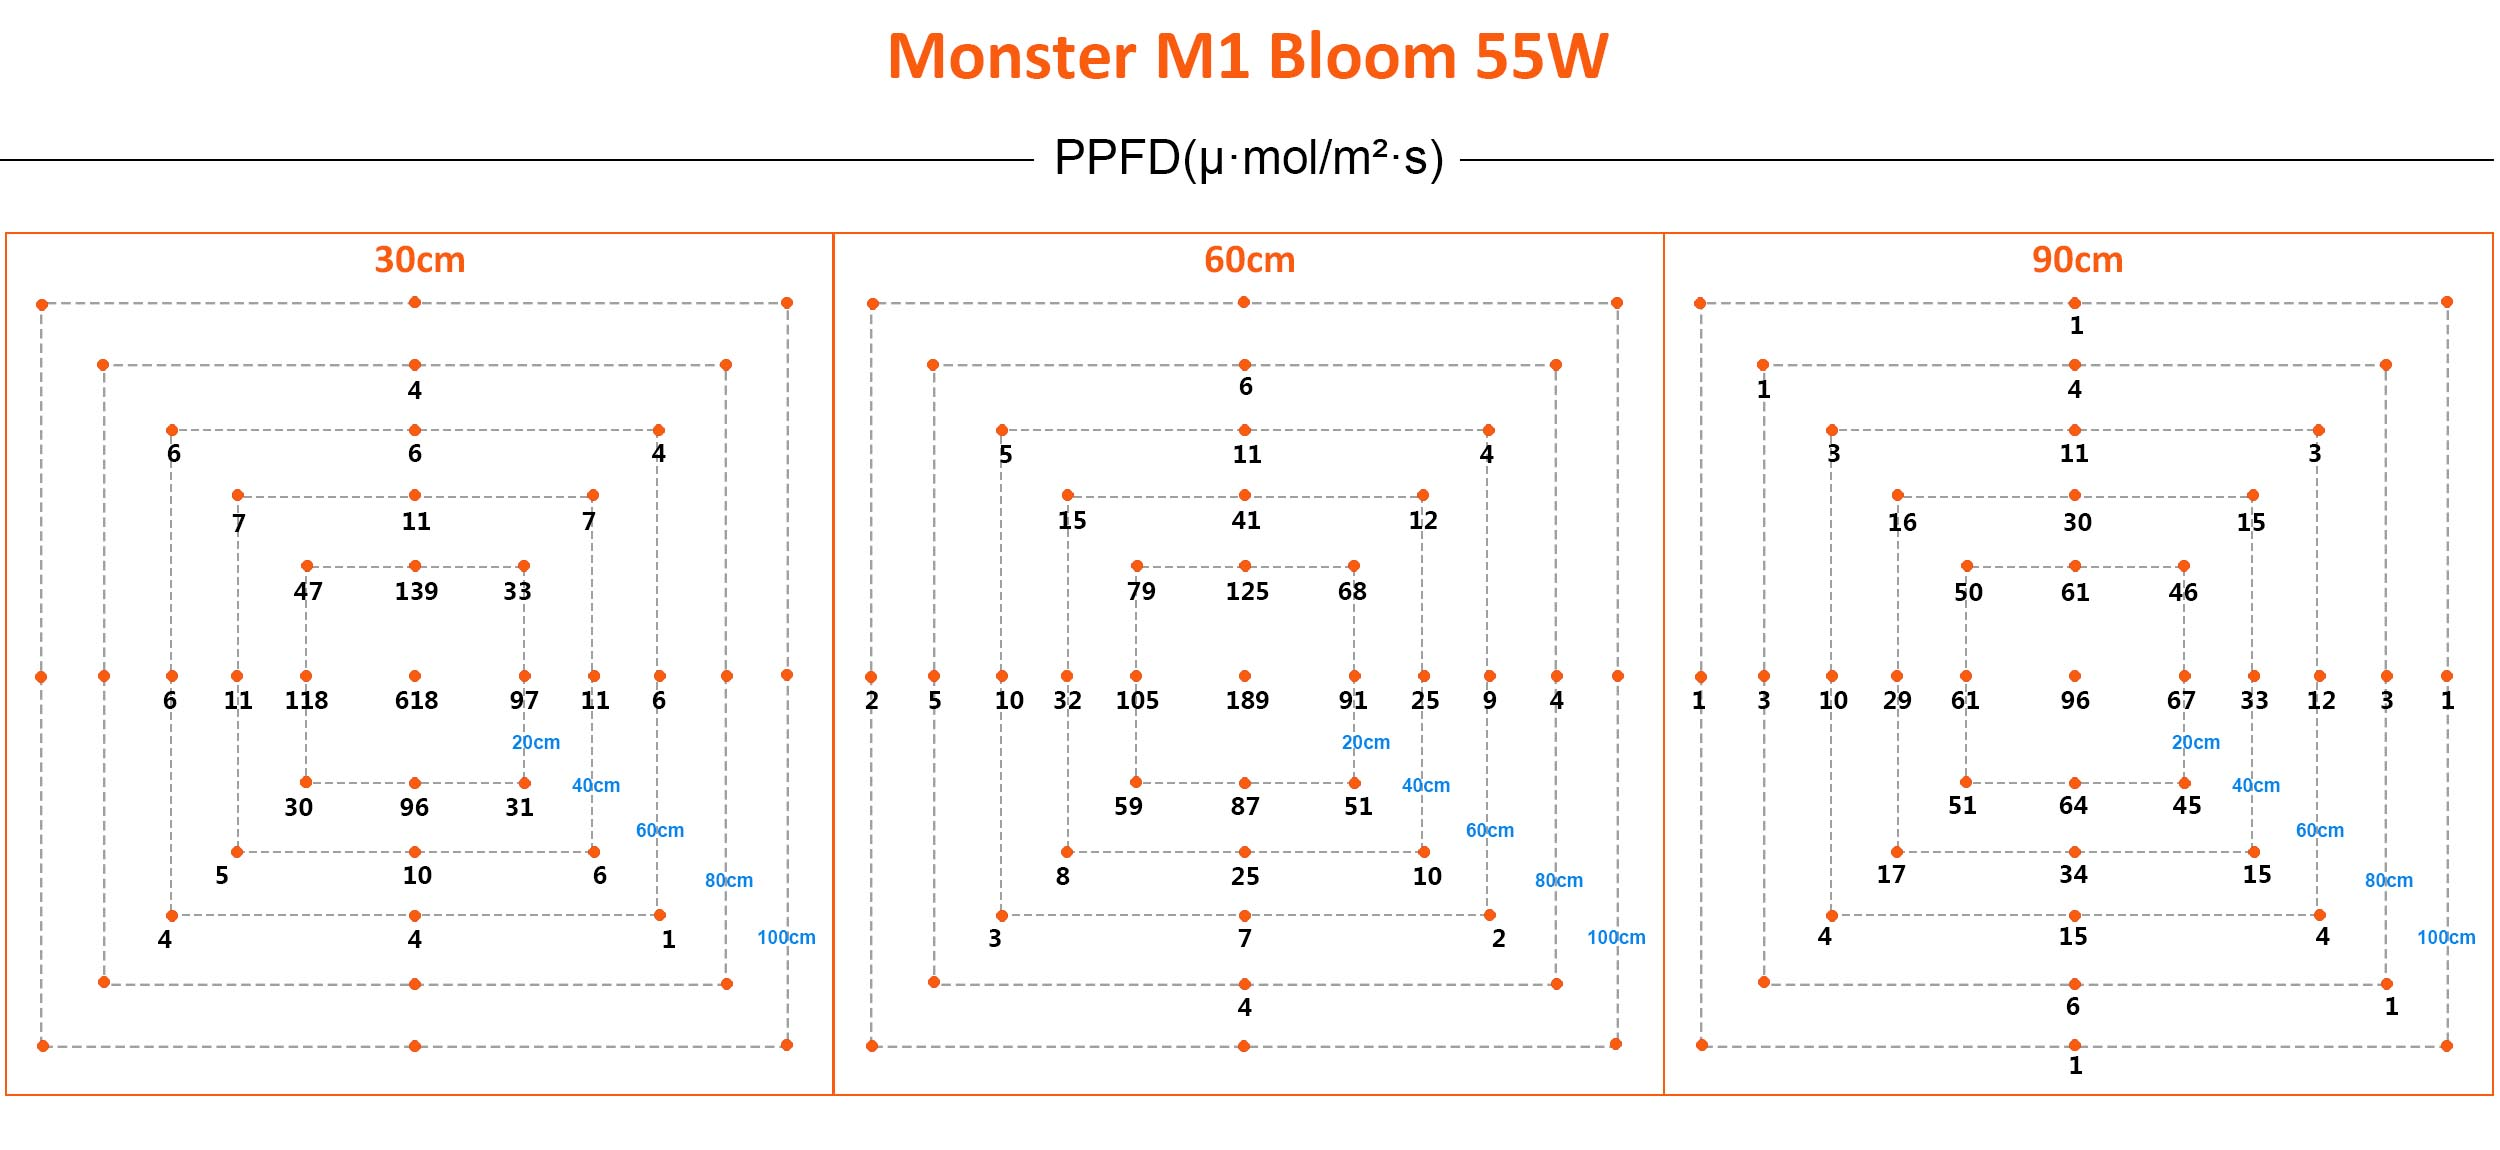 Spektrum & Messung Monster M1 55W Blüte LED